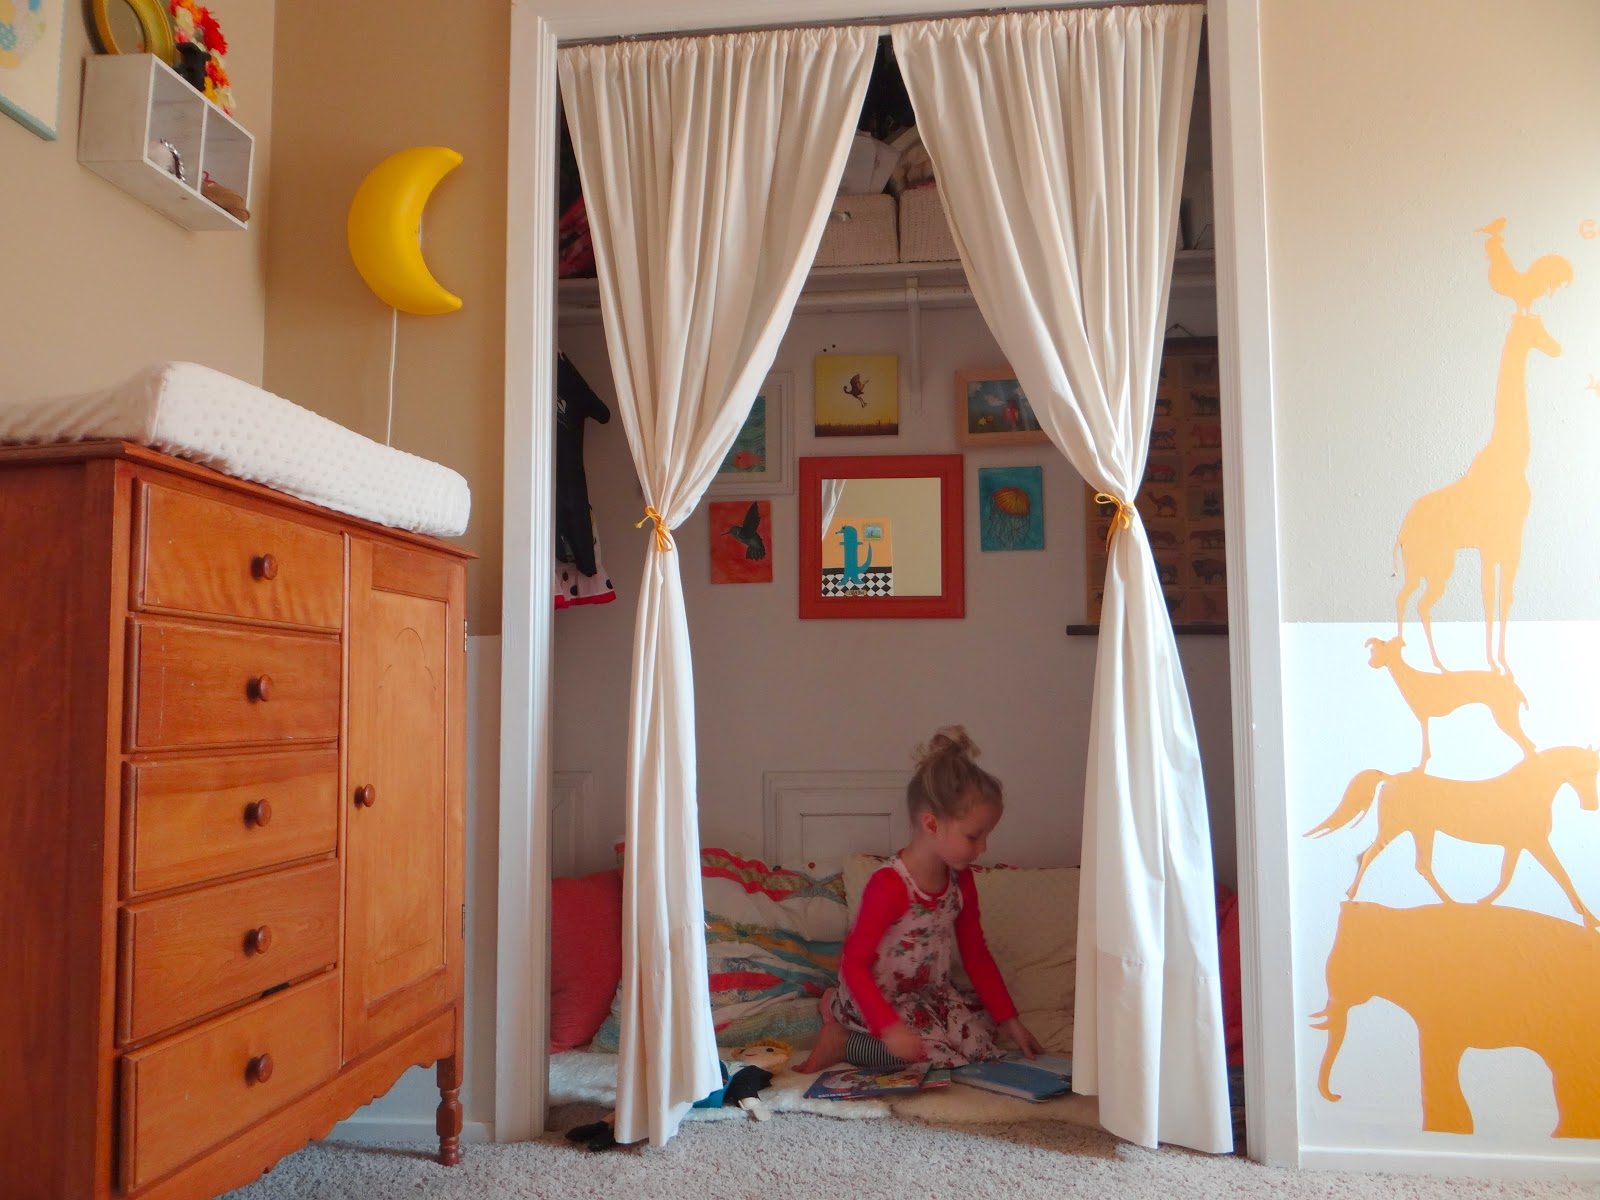 Lwd+closet+reading+nook+kids+room